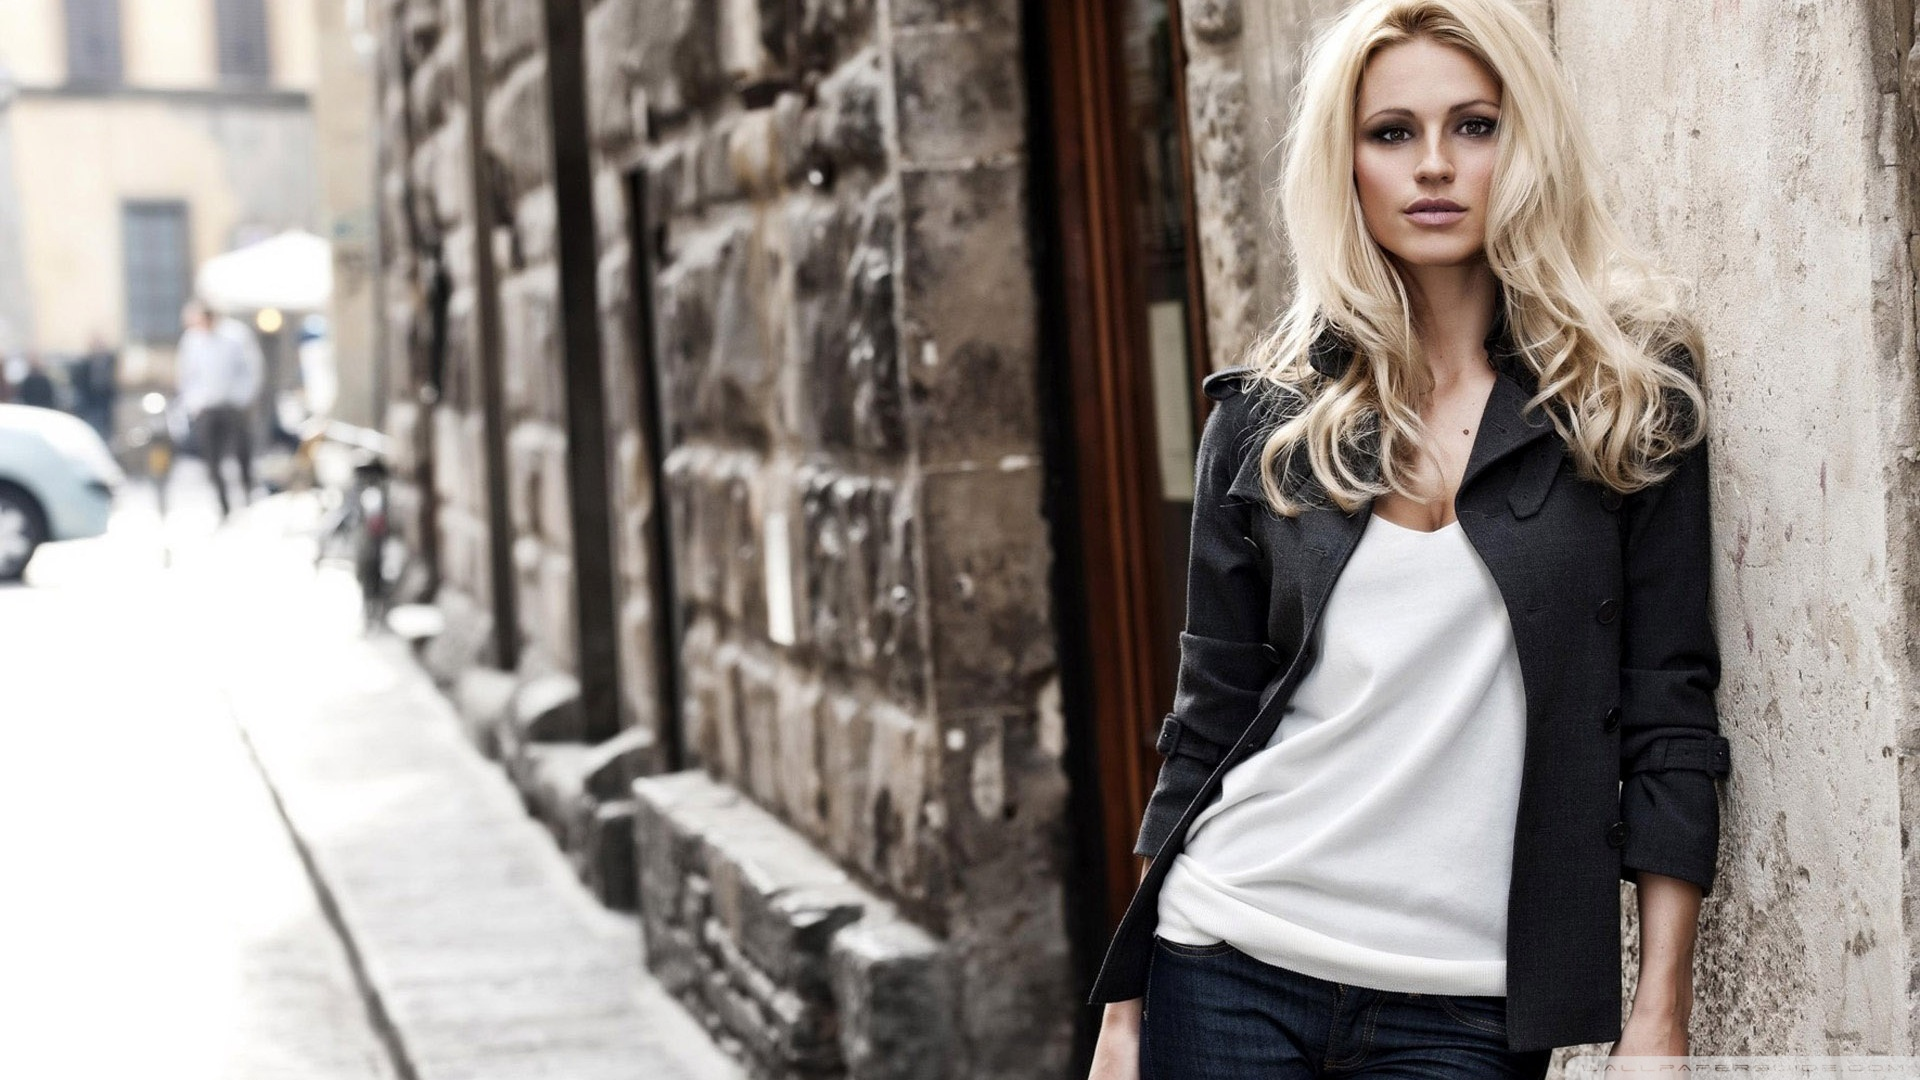 blonde_woman_city_street_photography-wallpaper-1920x1080